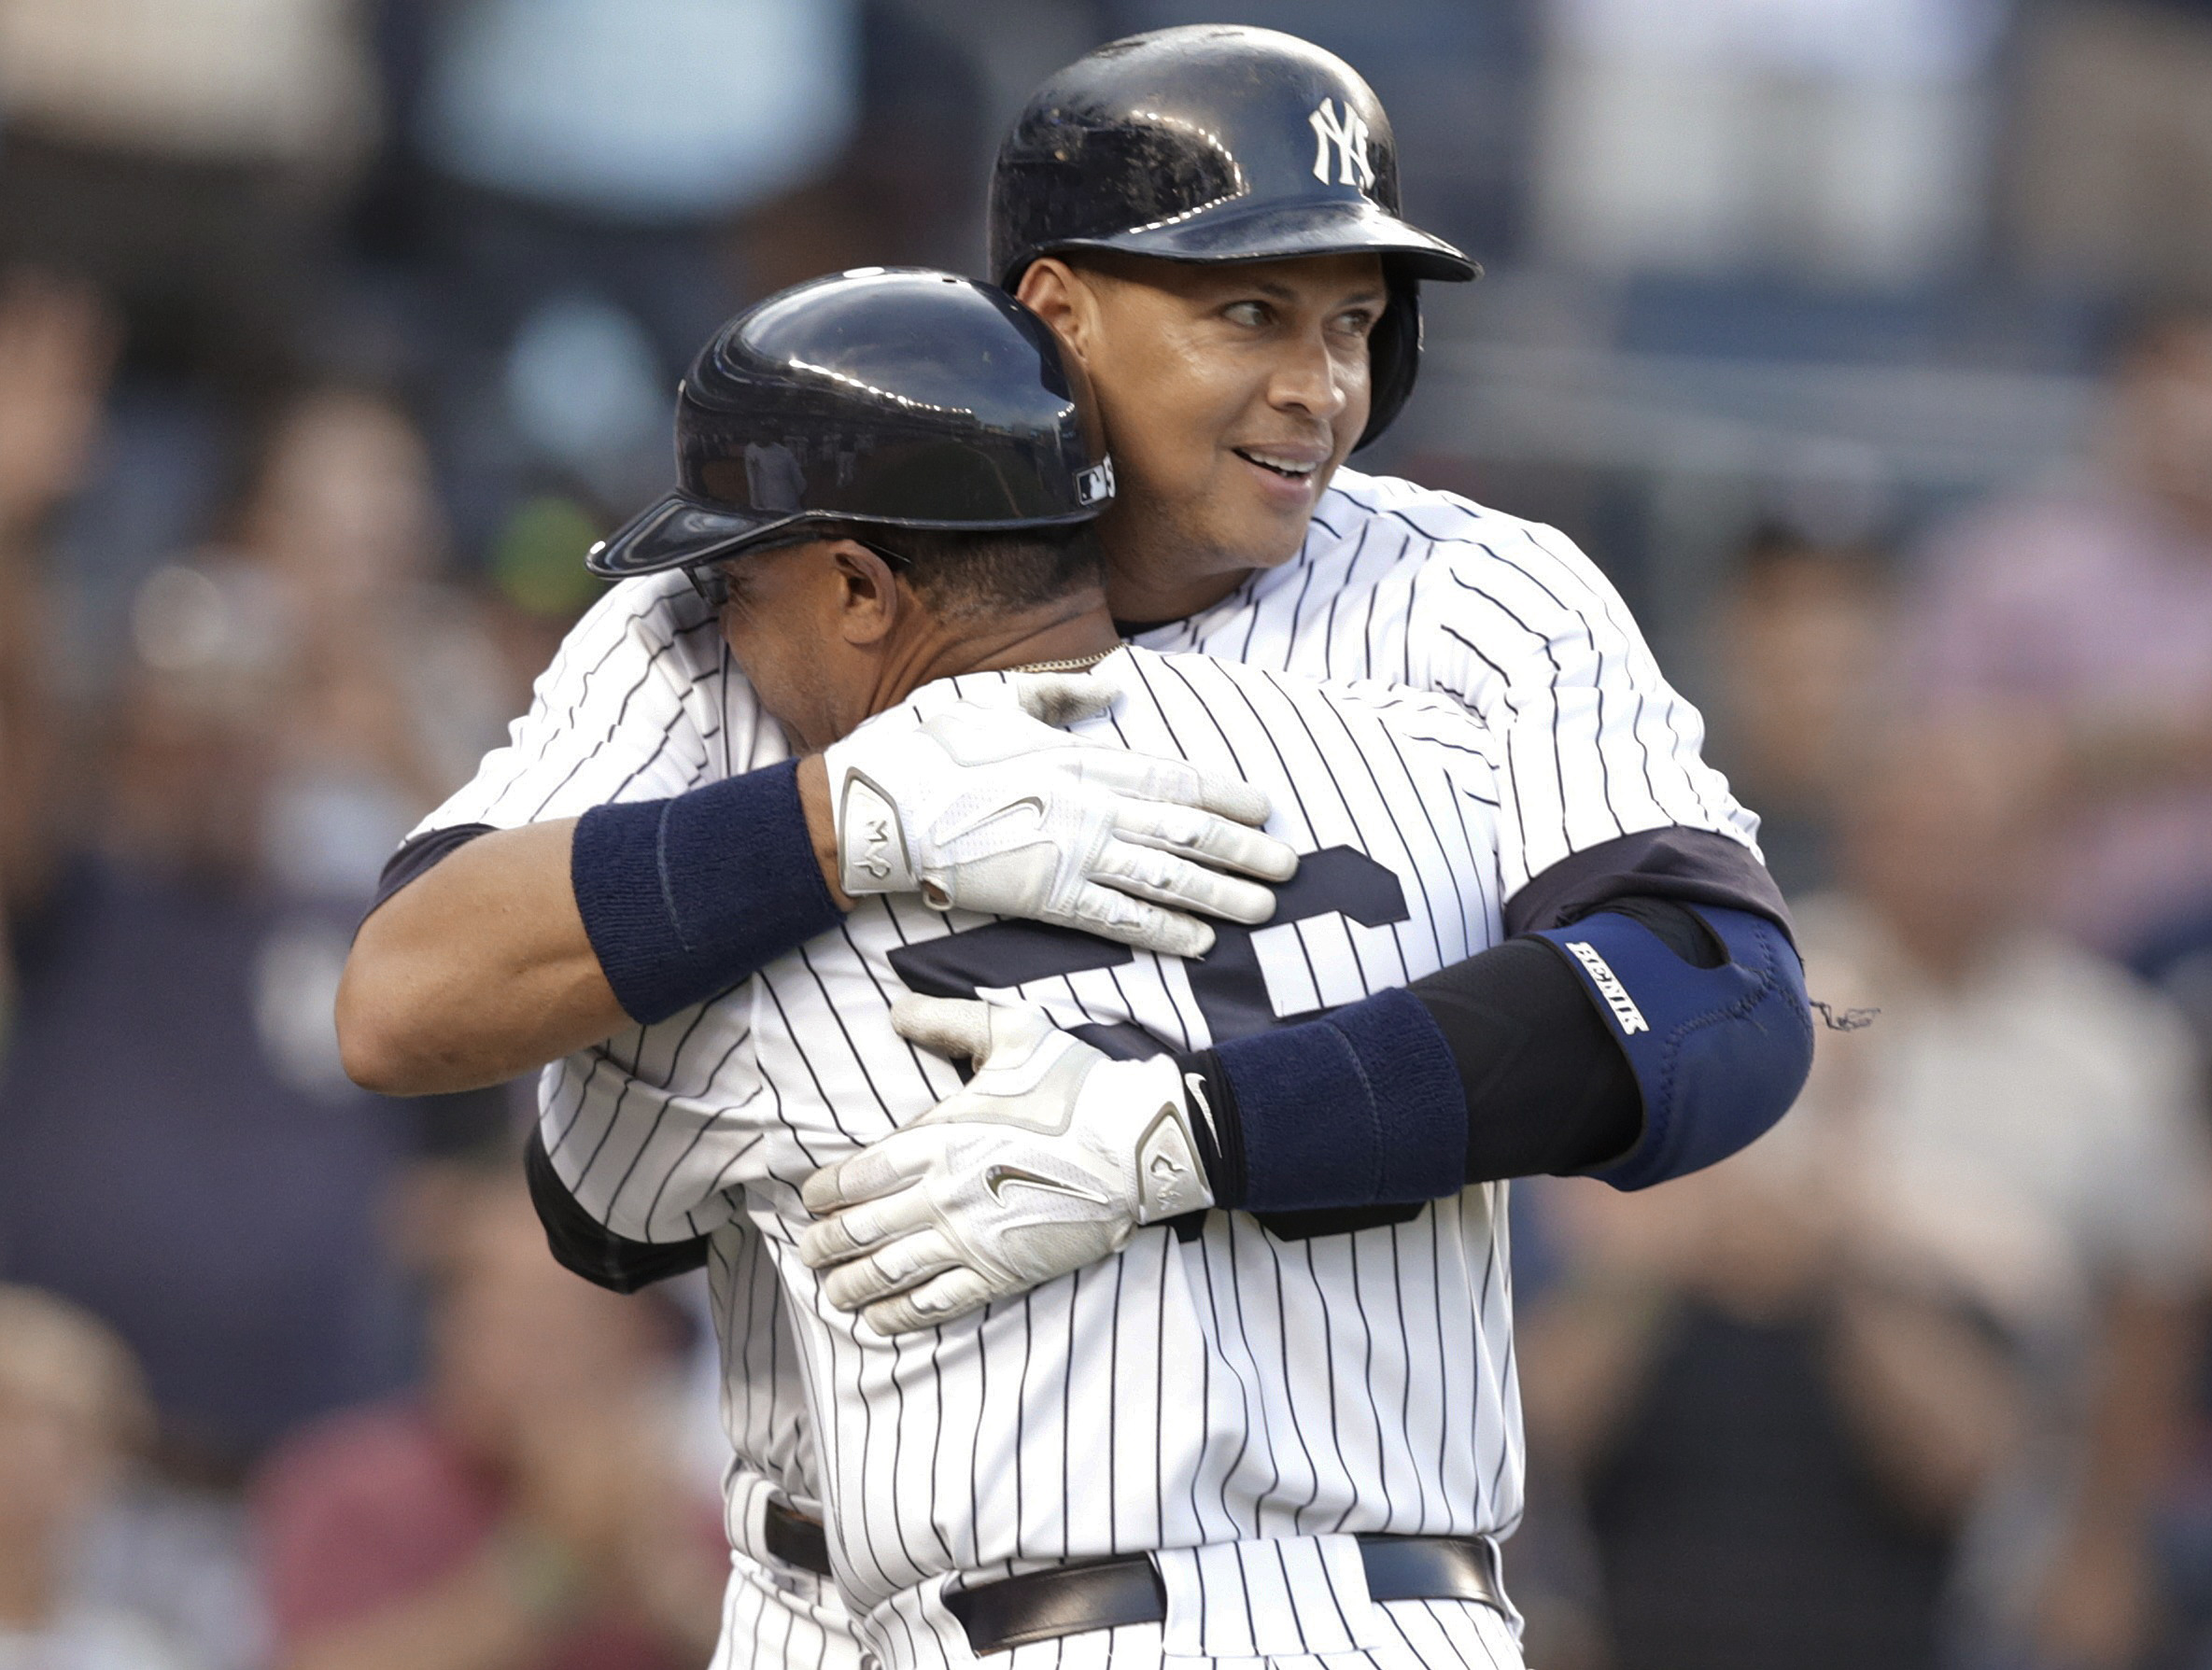 New York Yankees' Alex Rodriguez hugs first base coach Tony Pena after hitting a home run for his 3,000th career hit, during the first inning of a baseball game against the Detroit Tigers on Friday, June 19, 2015, in New York. (AP Photo/Frank Franklin II)